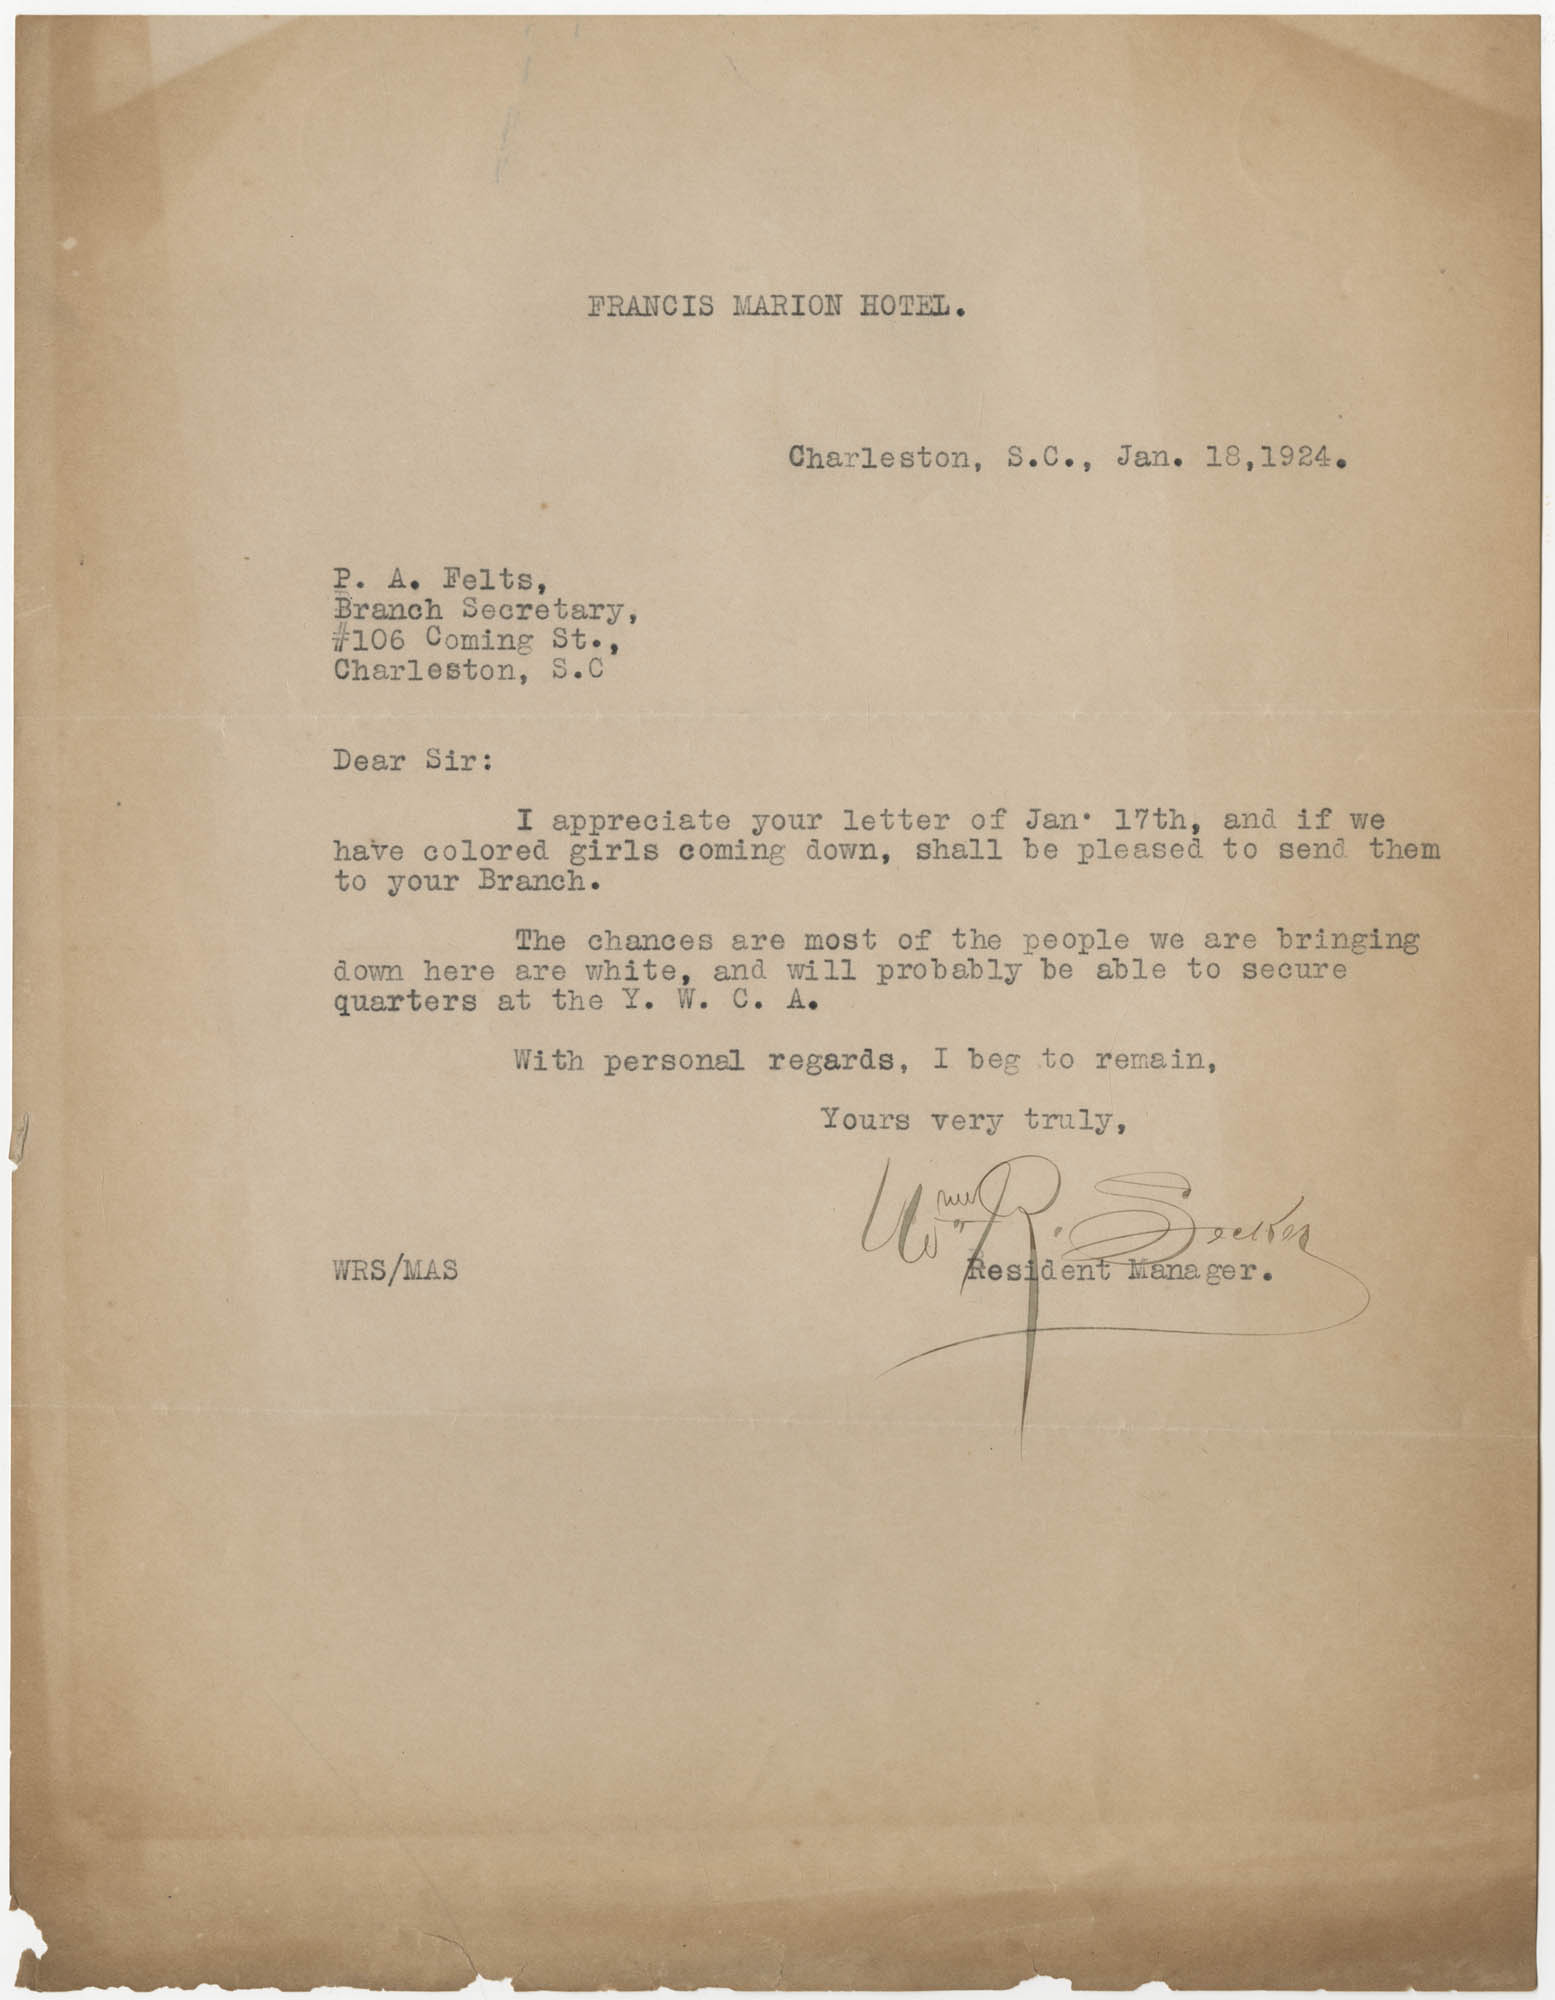 Letter to P. A. Felts, January 18, 1924